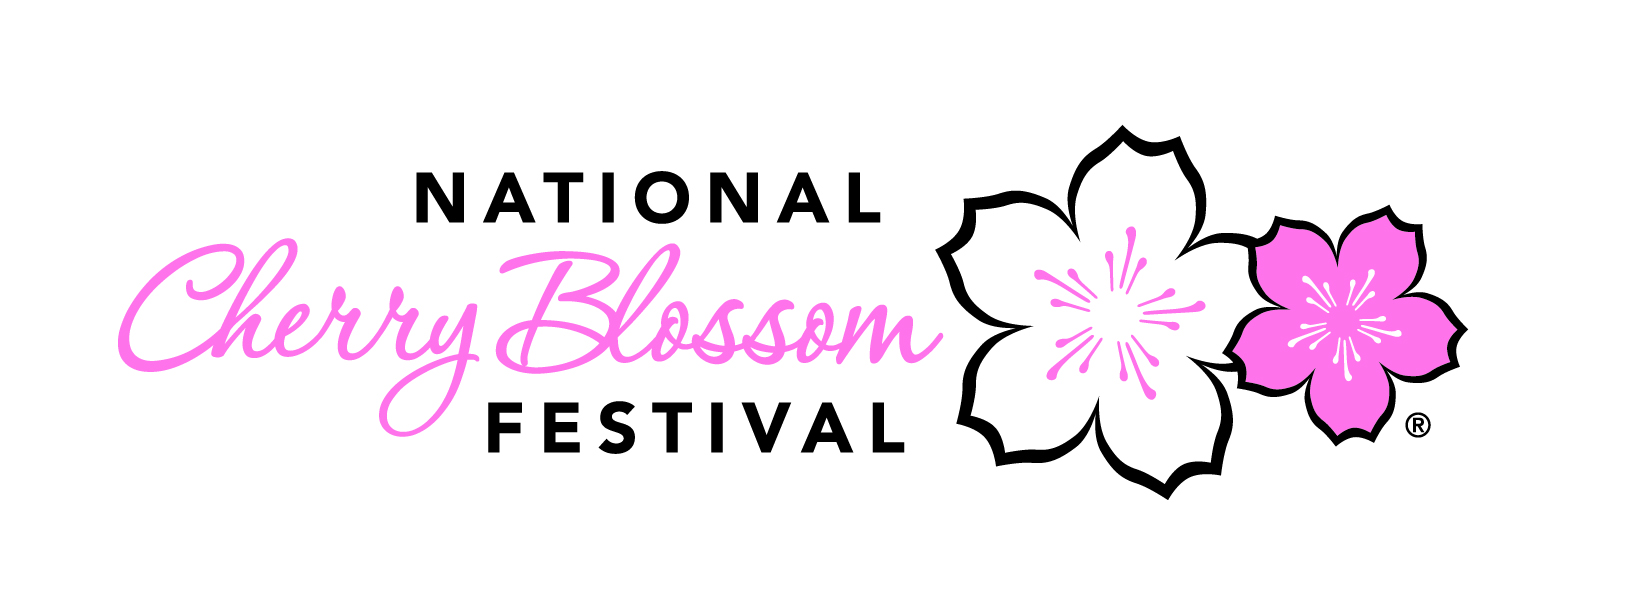 Image result for national cherry blossom festival logo